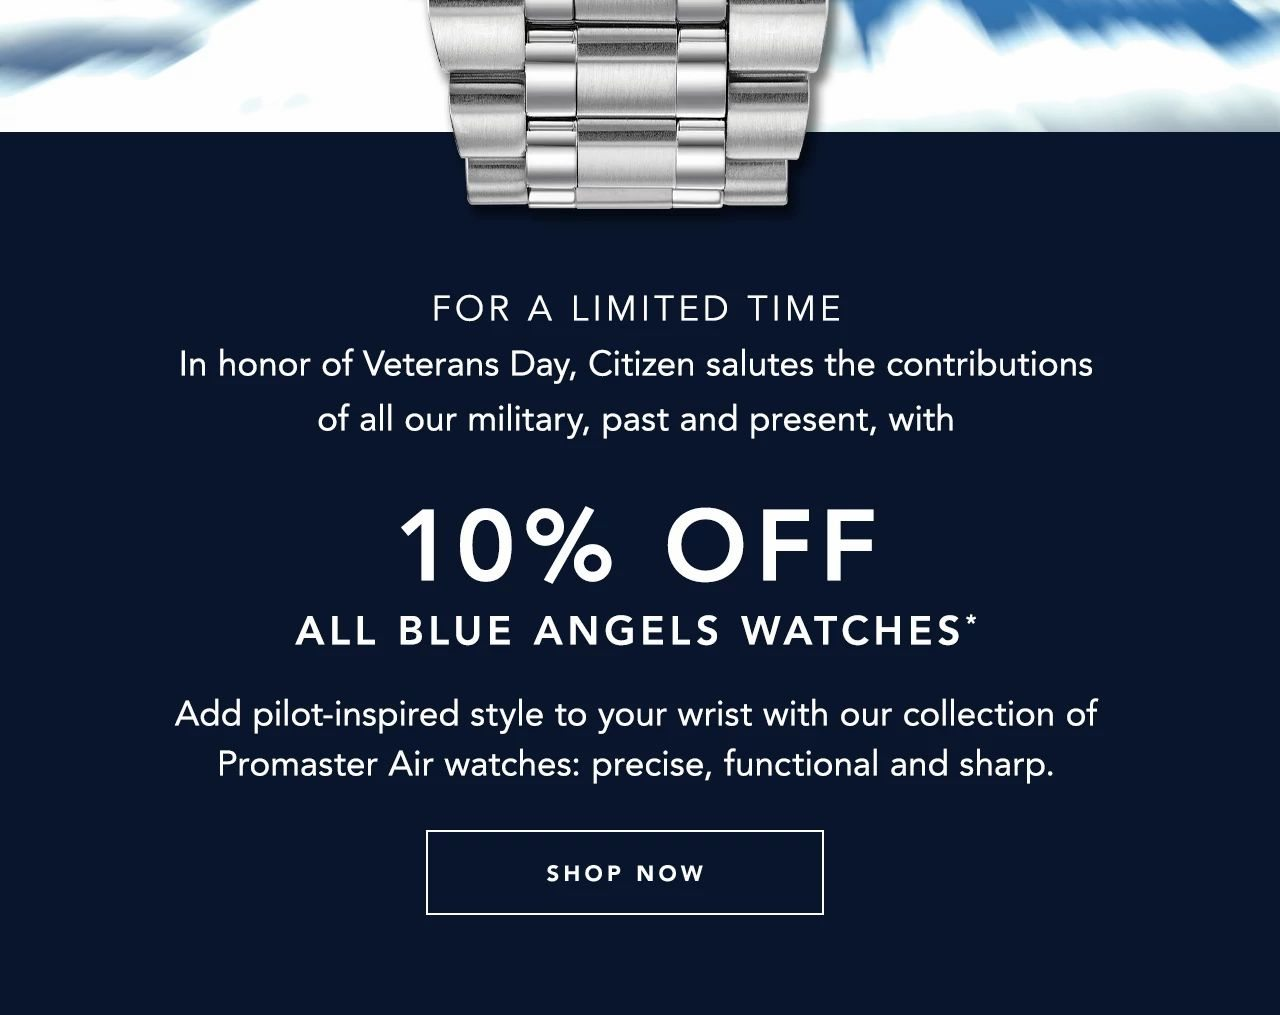 Limited Time On Veterans Day - In honor of Veterans Day, Citizen salutes the contributions of all our military, past and present, with 10% off all Blue Angels watches.